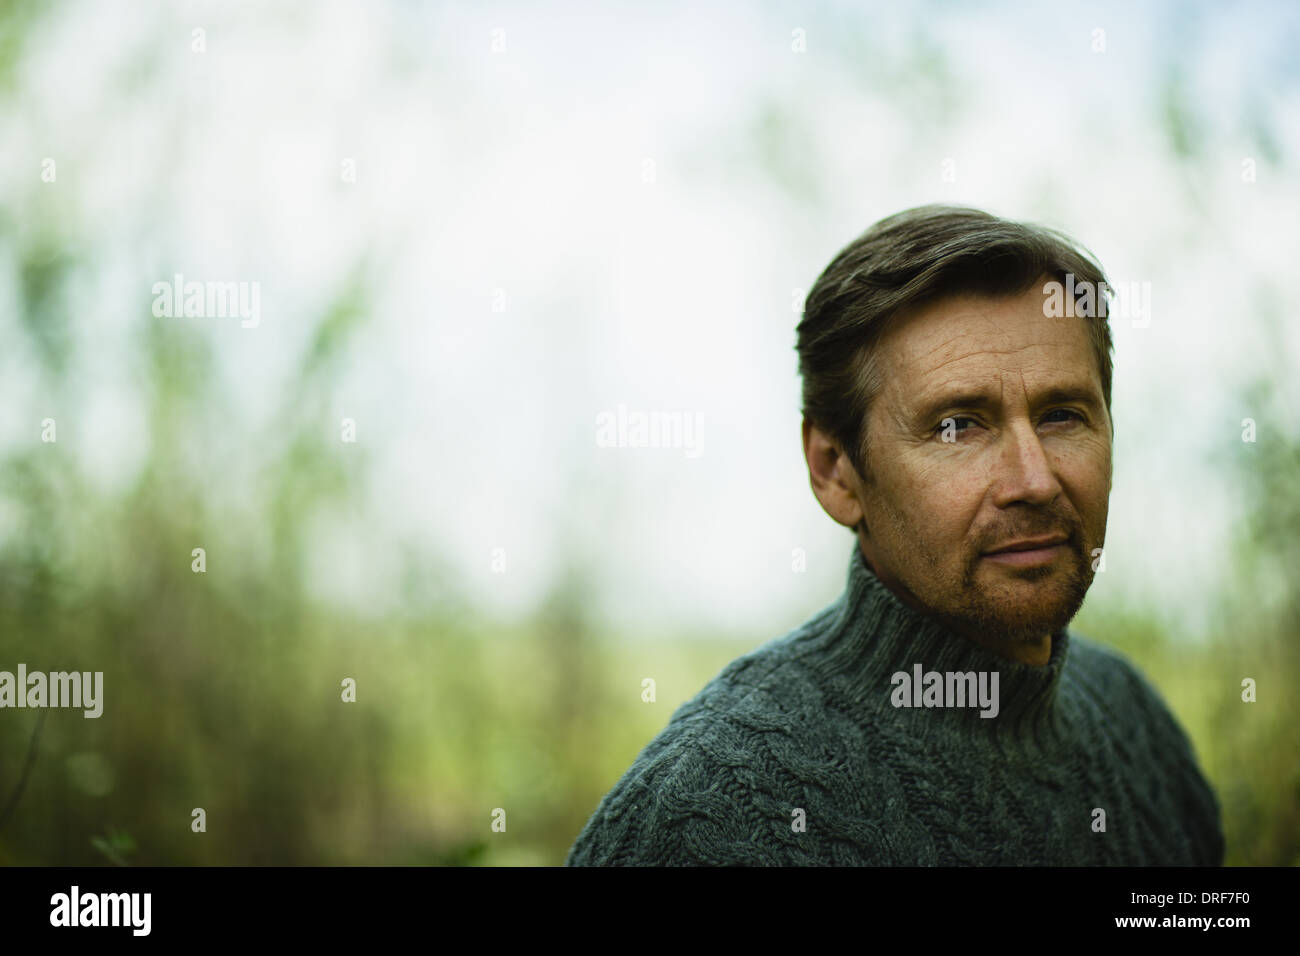 Colorado USA middle-aged man looking pensive Photo Stock